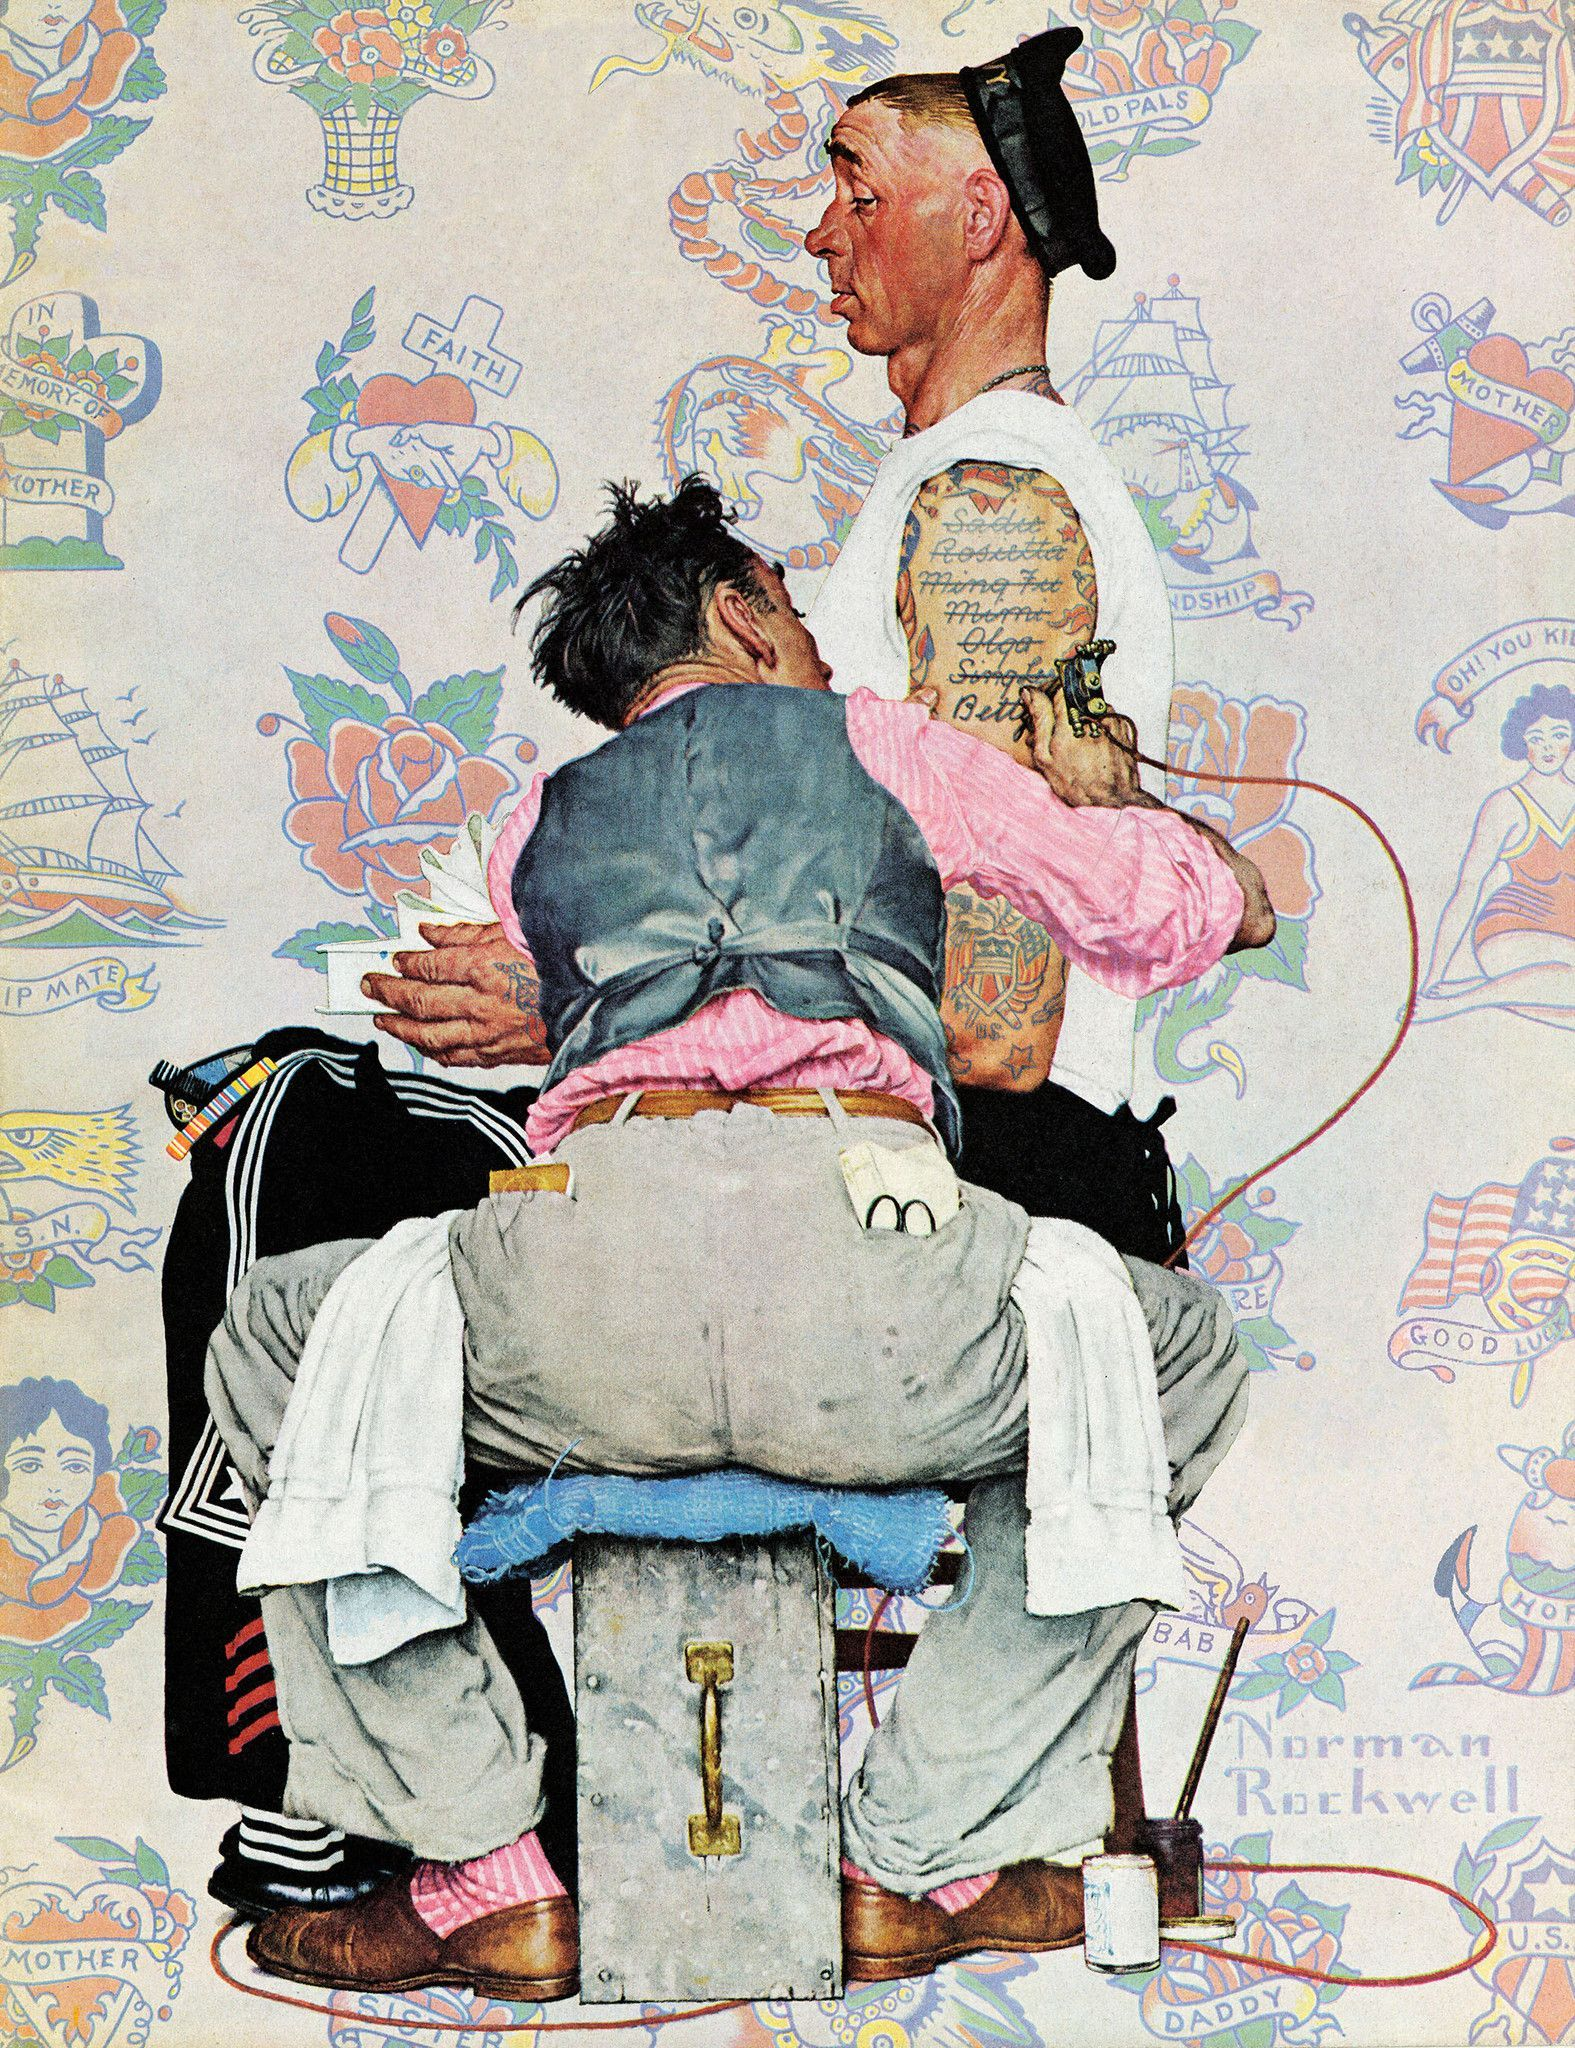 Tattoo Artist Norman Rockwell Art Norman Rockwell Paintings